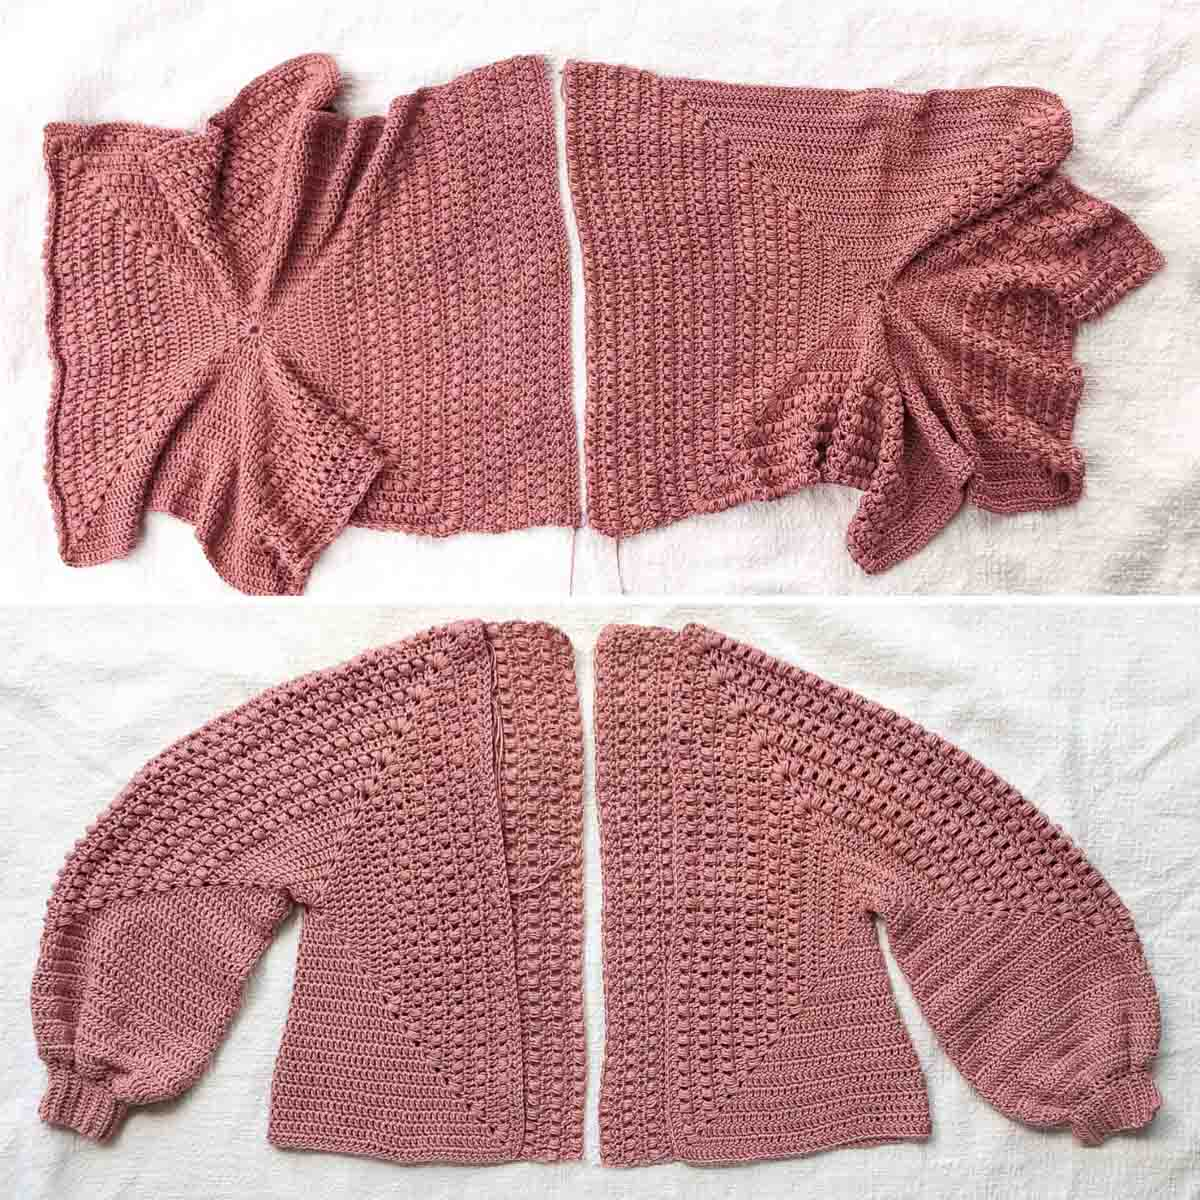 Two overhead views of crochet hexagons: laid out flat and folded into the sleeves and body of a crochet cardigan.